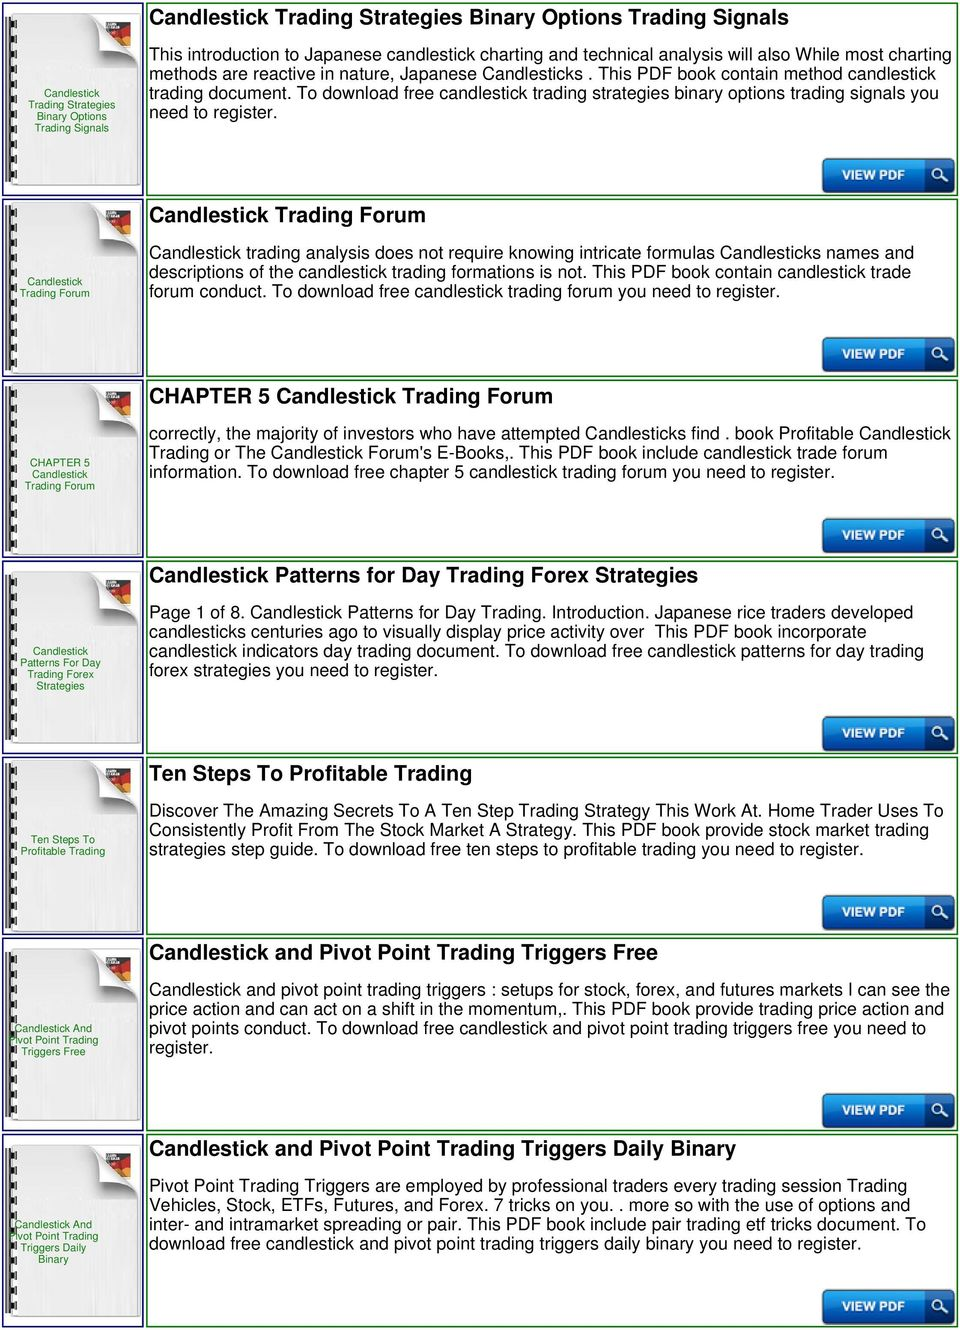 To download free candlestick trading strategies binary options trading signals you need to Trading Forum Trading Forum trading analysis does not require knowing intricate formulas s names and